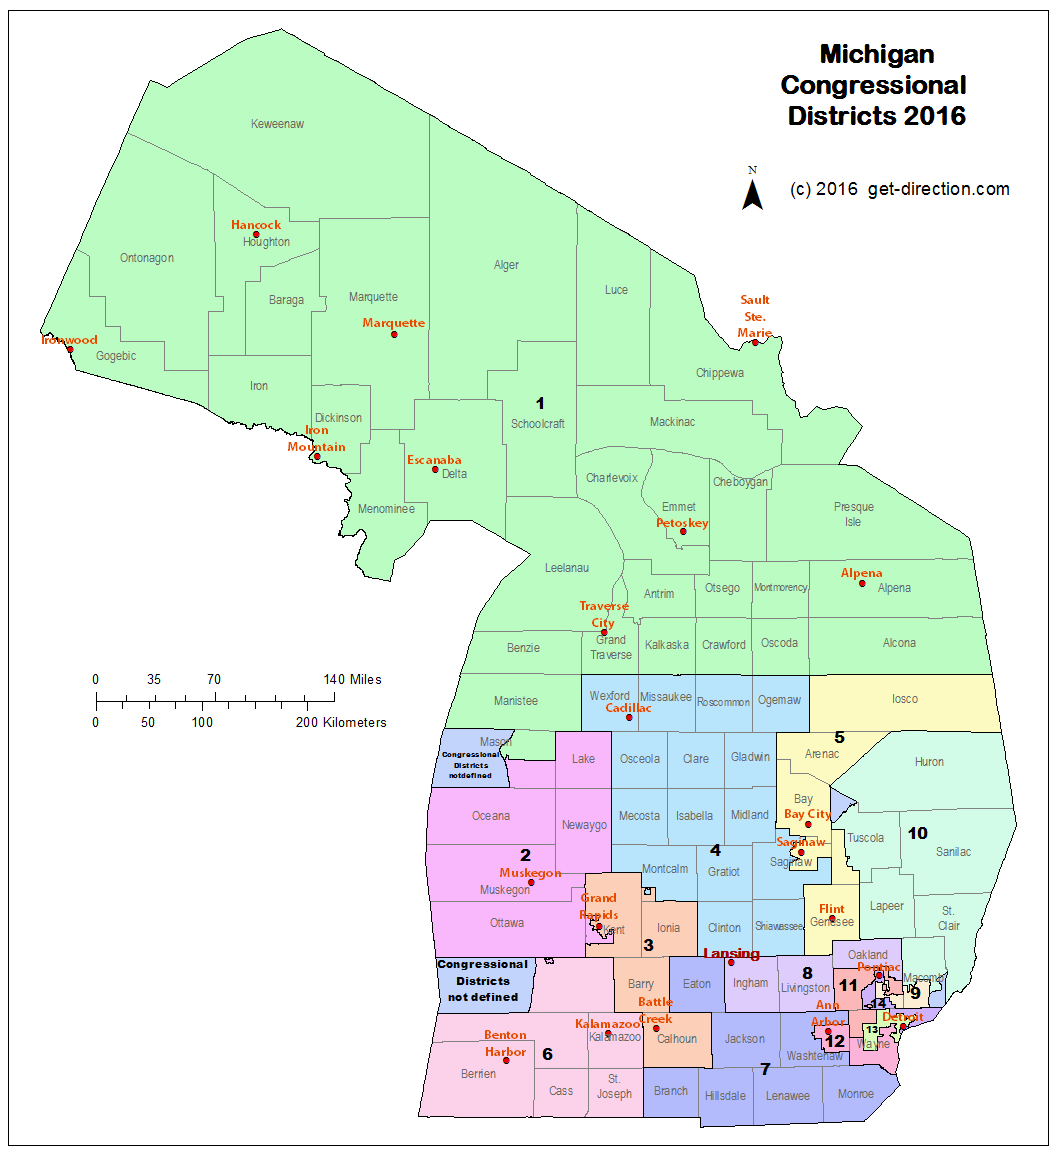 michigan-congressional-districts-2016.png